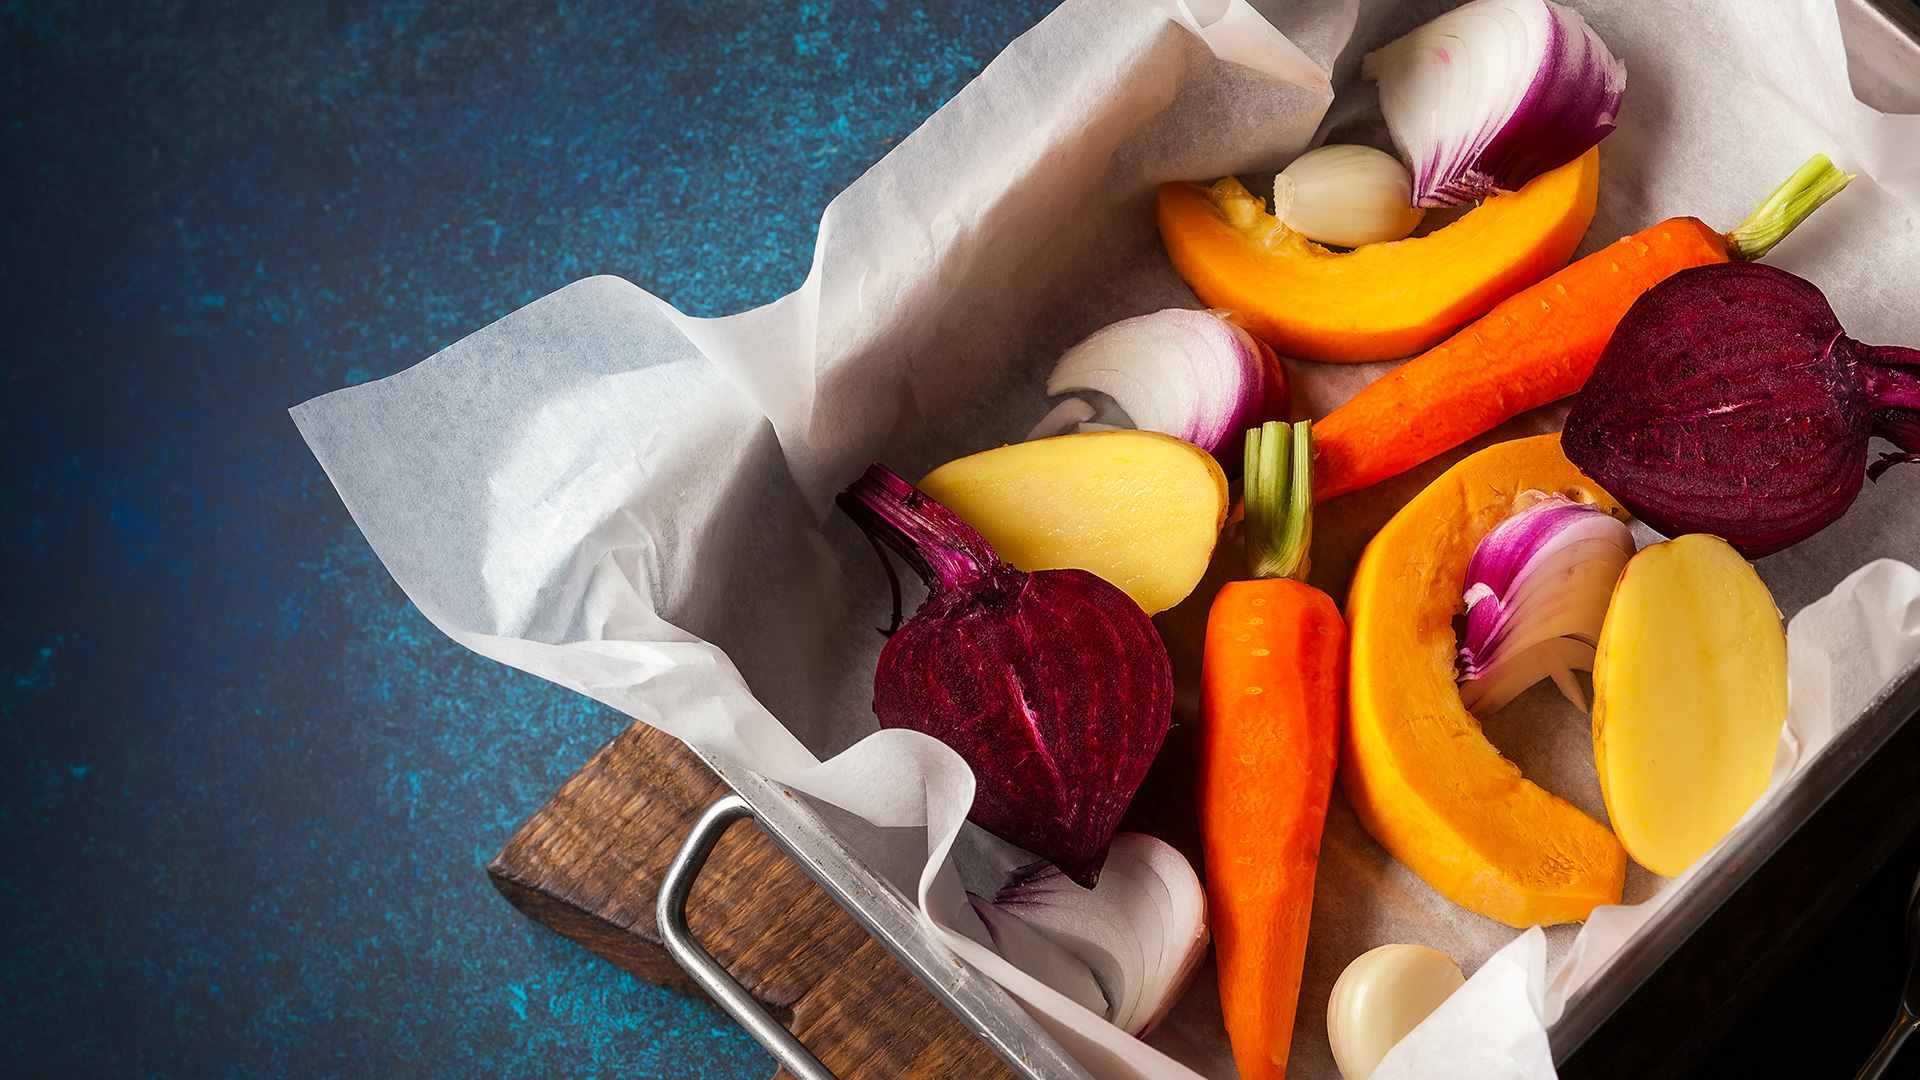 Healthy Together fruits and veggies